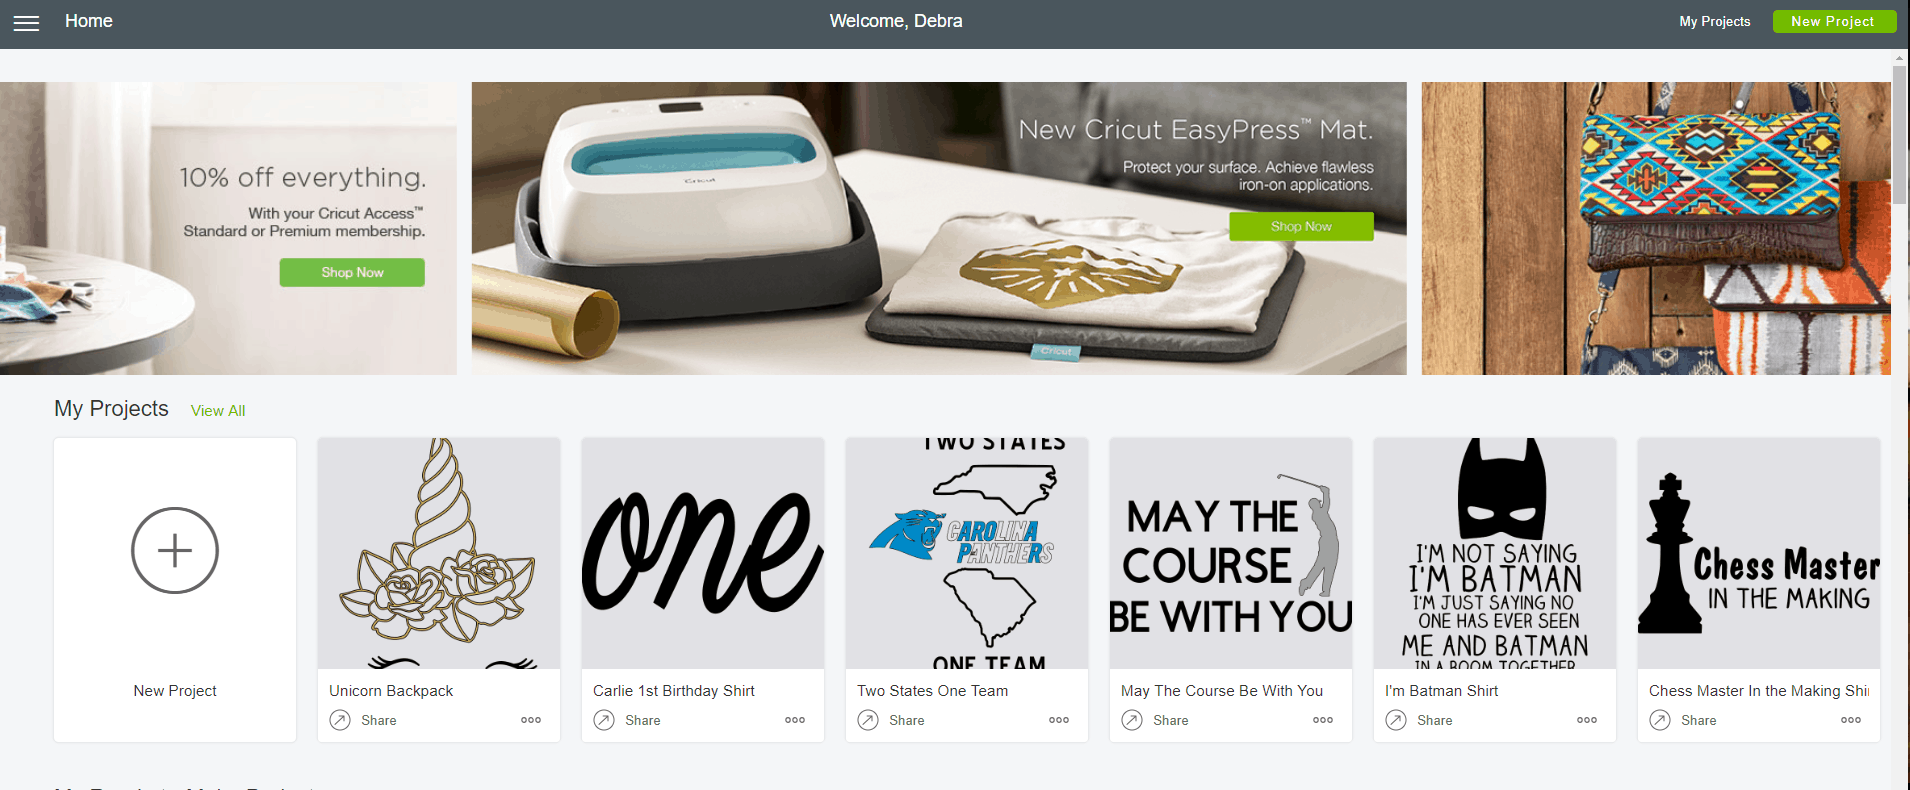 Five Ways To Use Your Cricut For Back To School - Housewife Eclectic